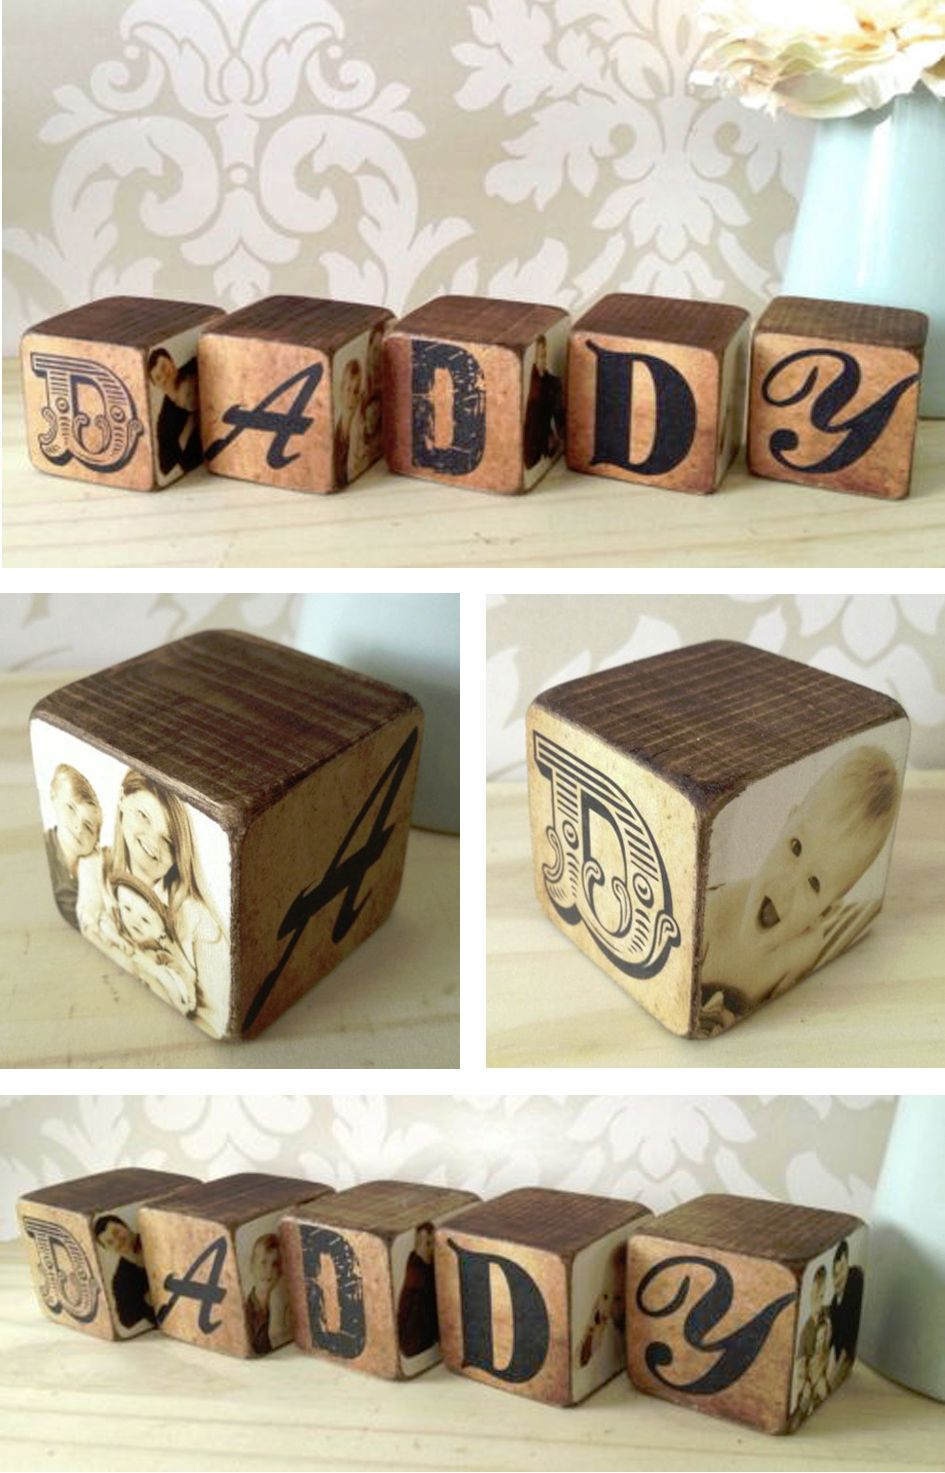 Mummy Daddy personalised wooden photo blocks